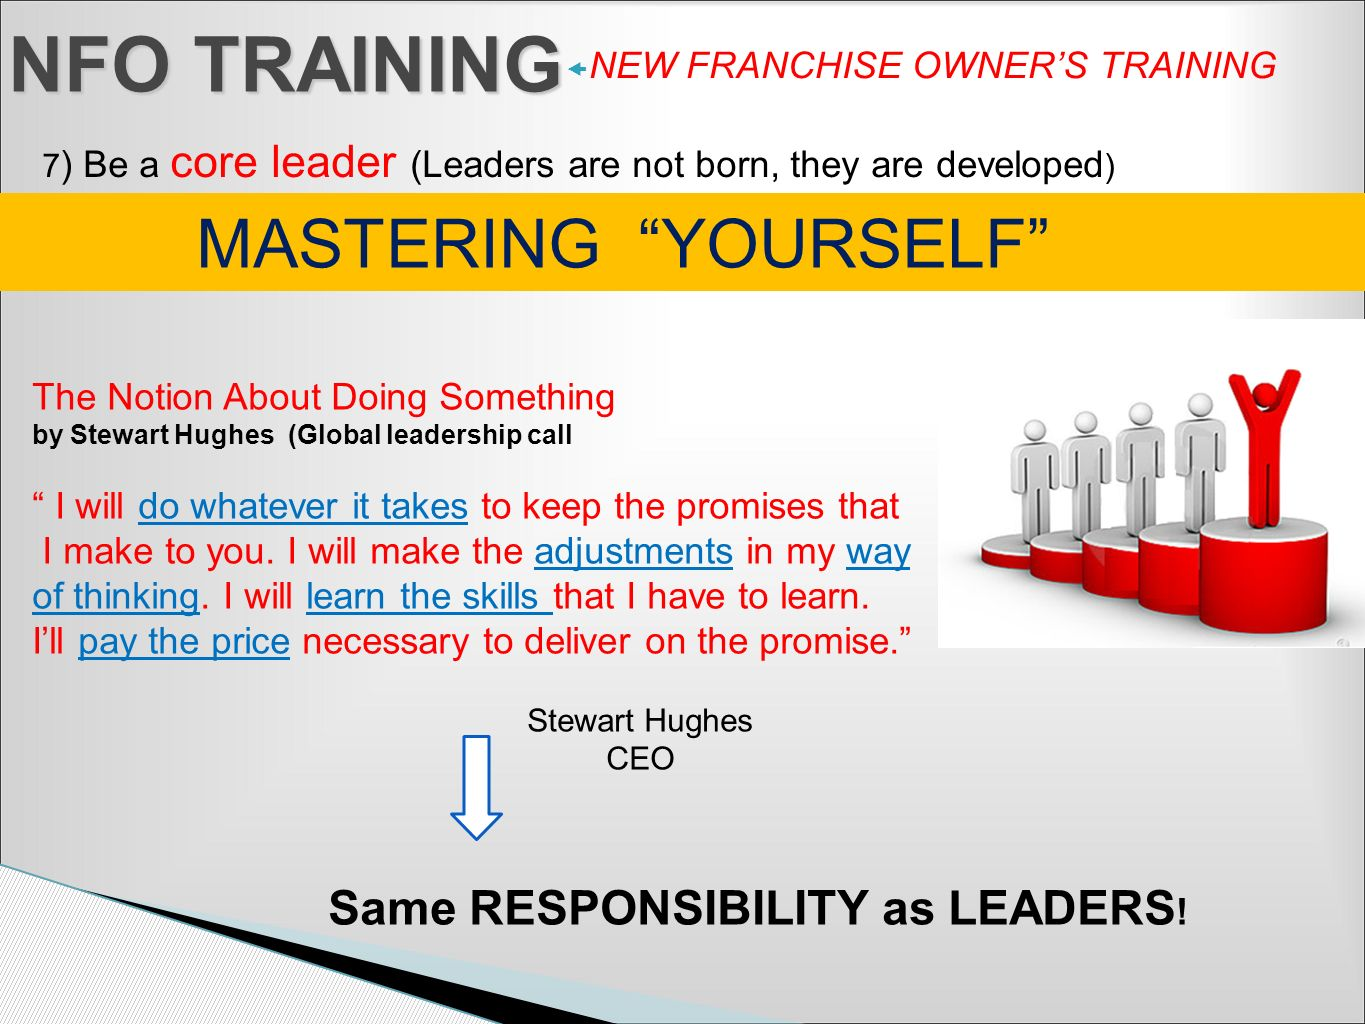 NFO TRAINING MASTERING YOURSELF Same RESPONSIBILITY as LEADERS!